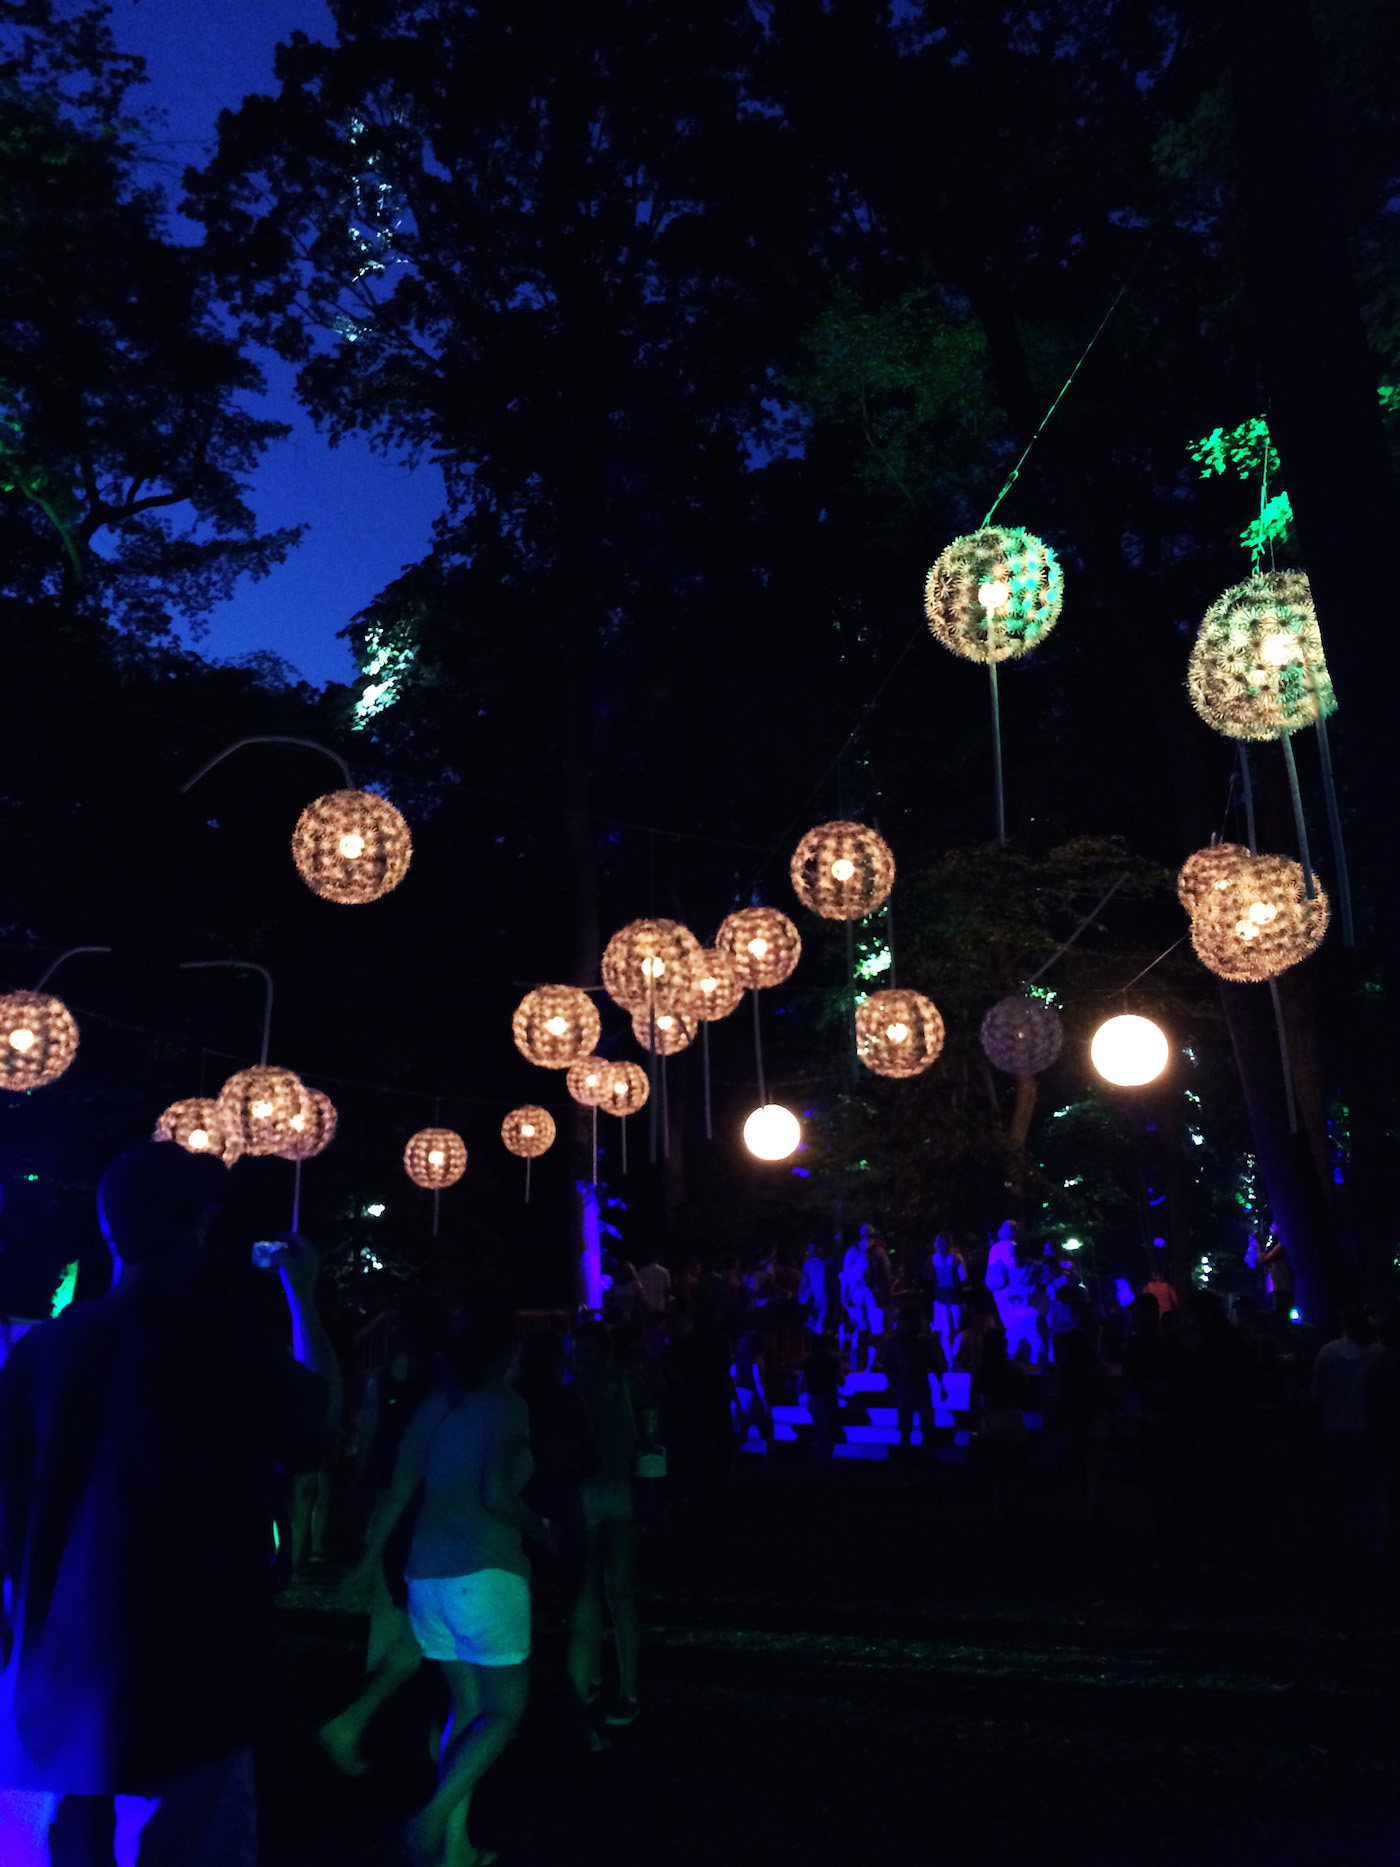 Dandelion Wishes at Firefly